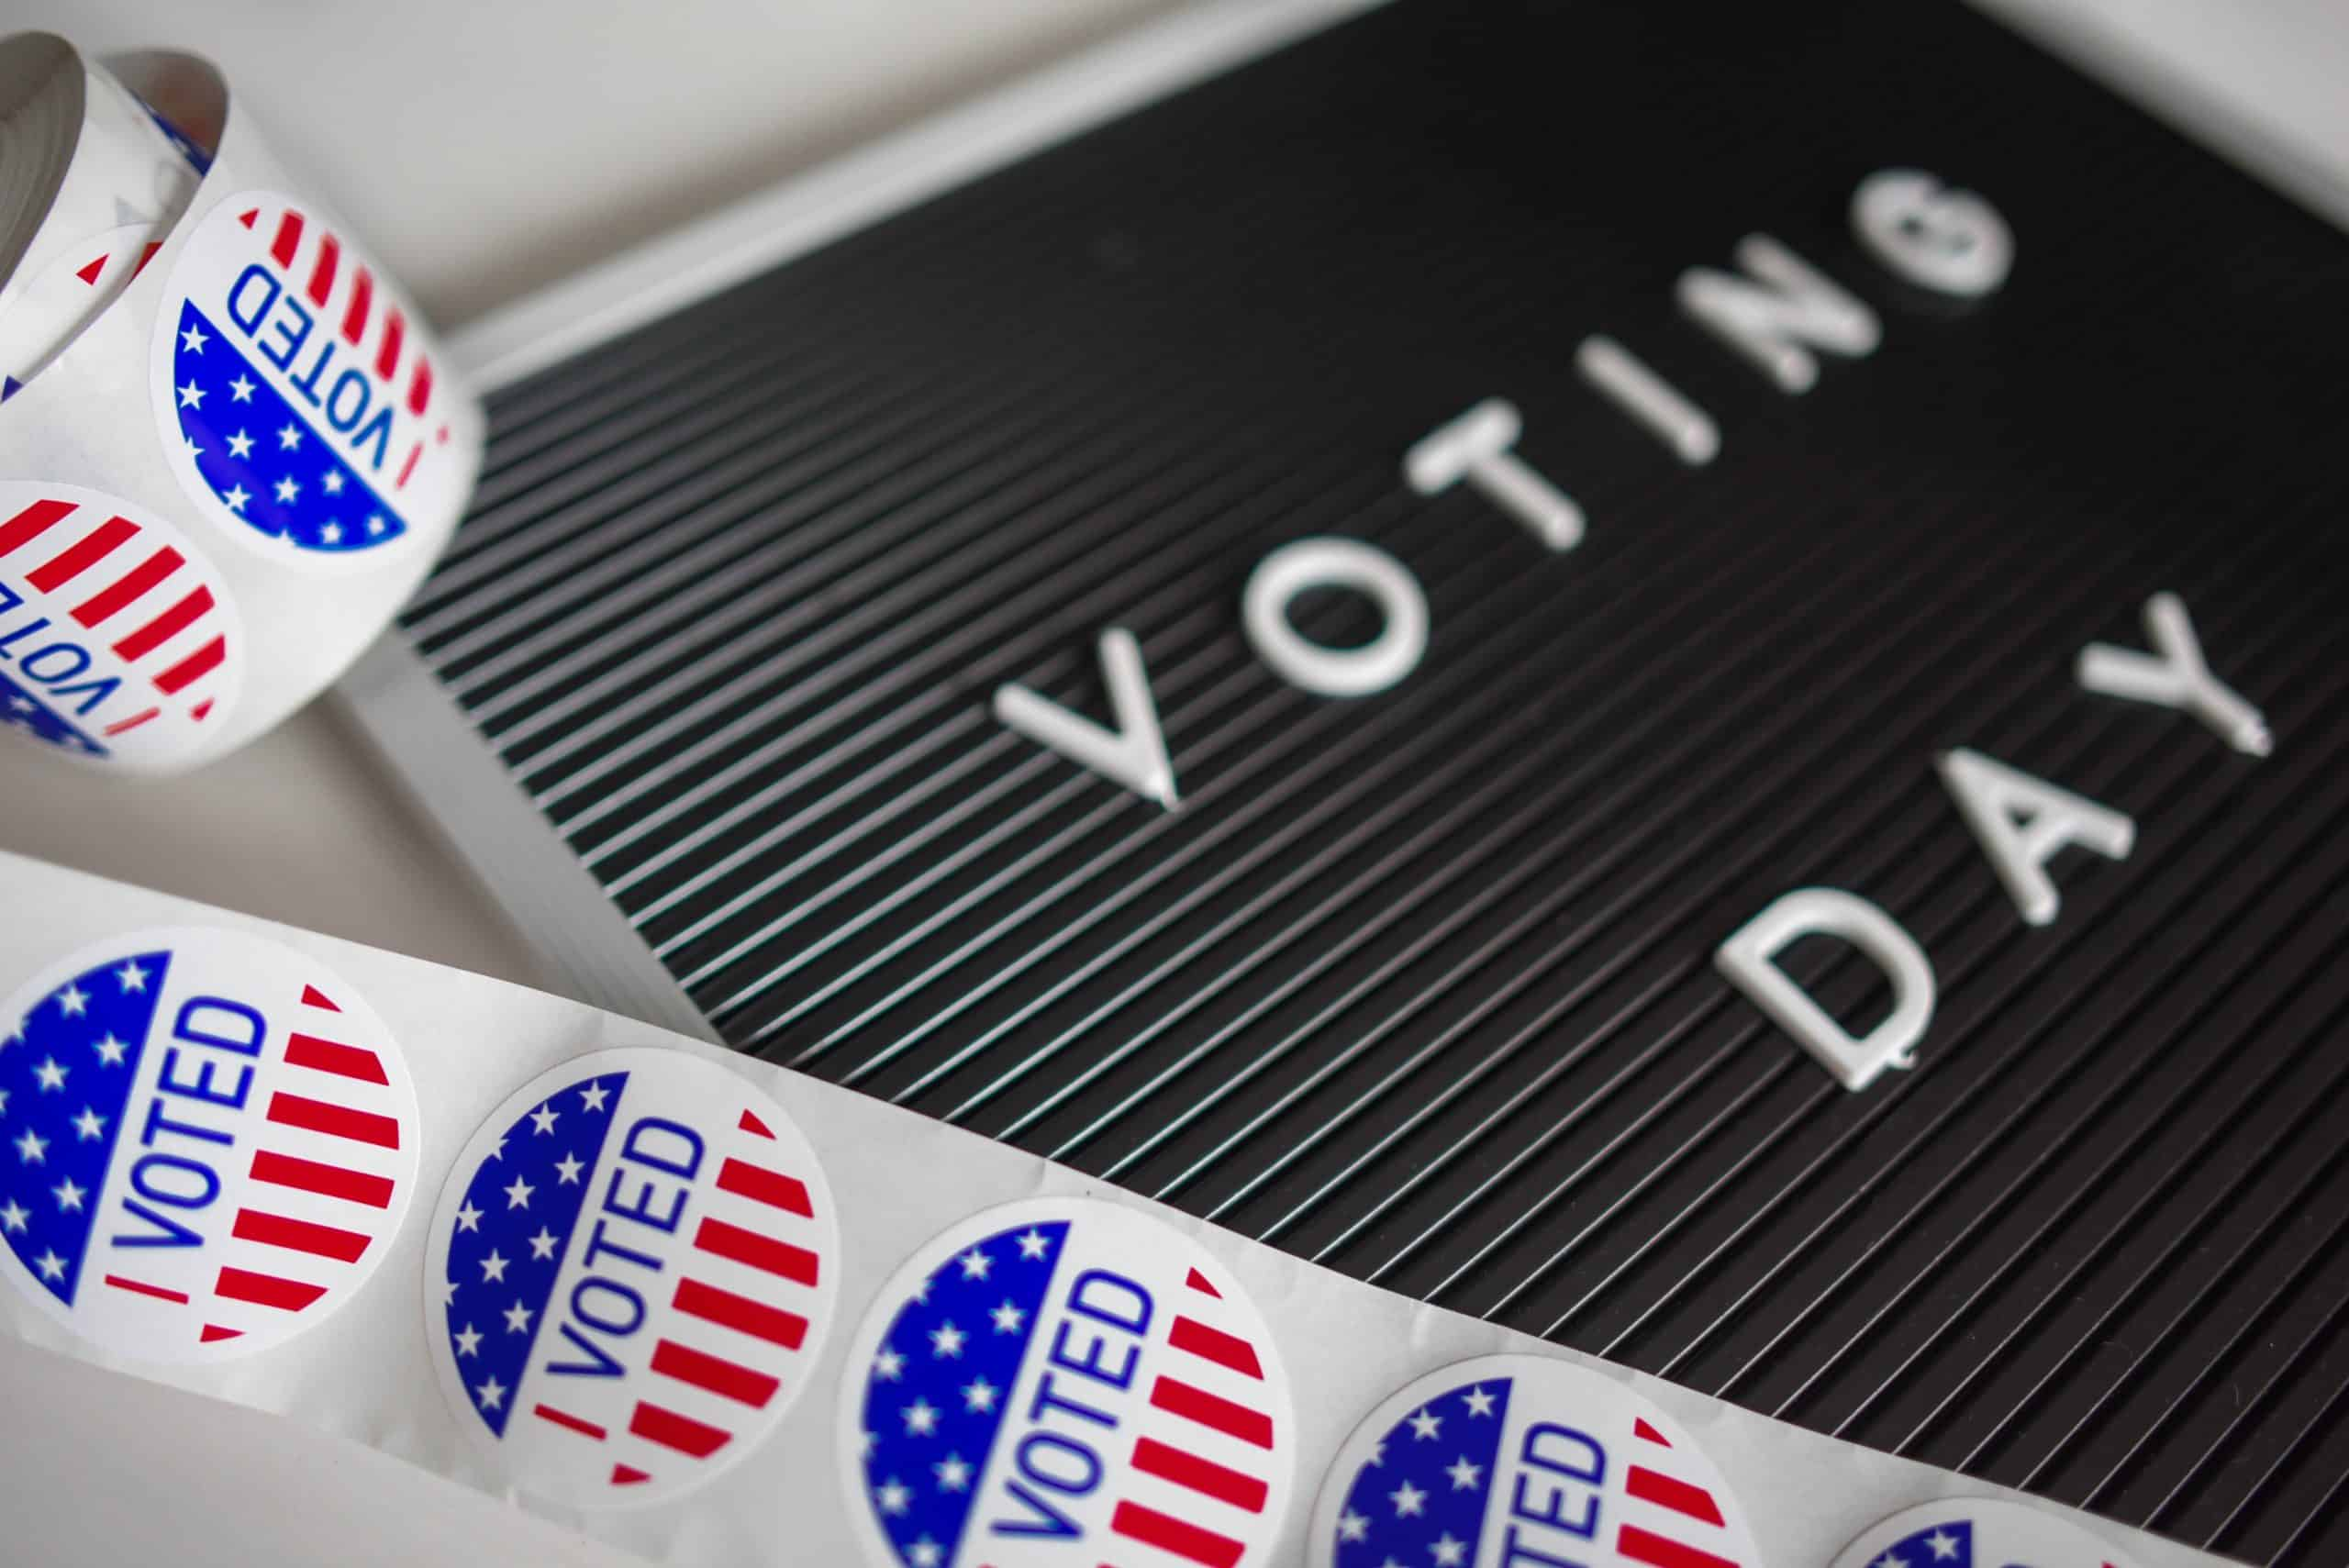 Learn the candidates' stances as you decide how to cast your vote.